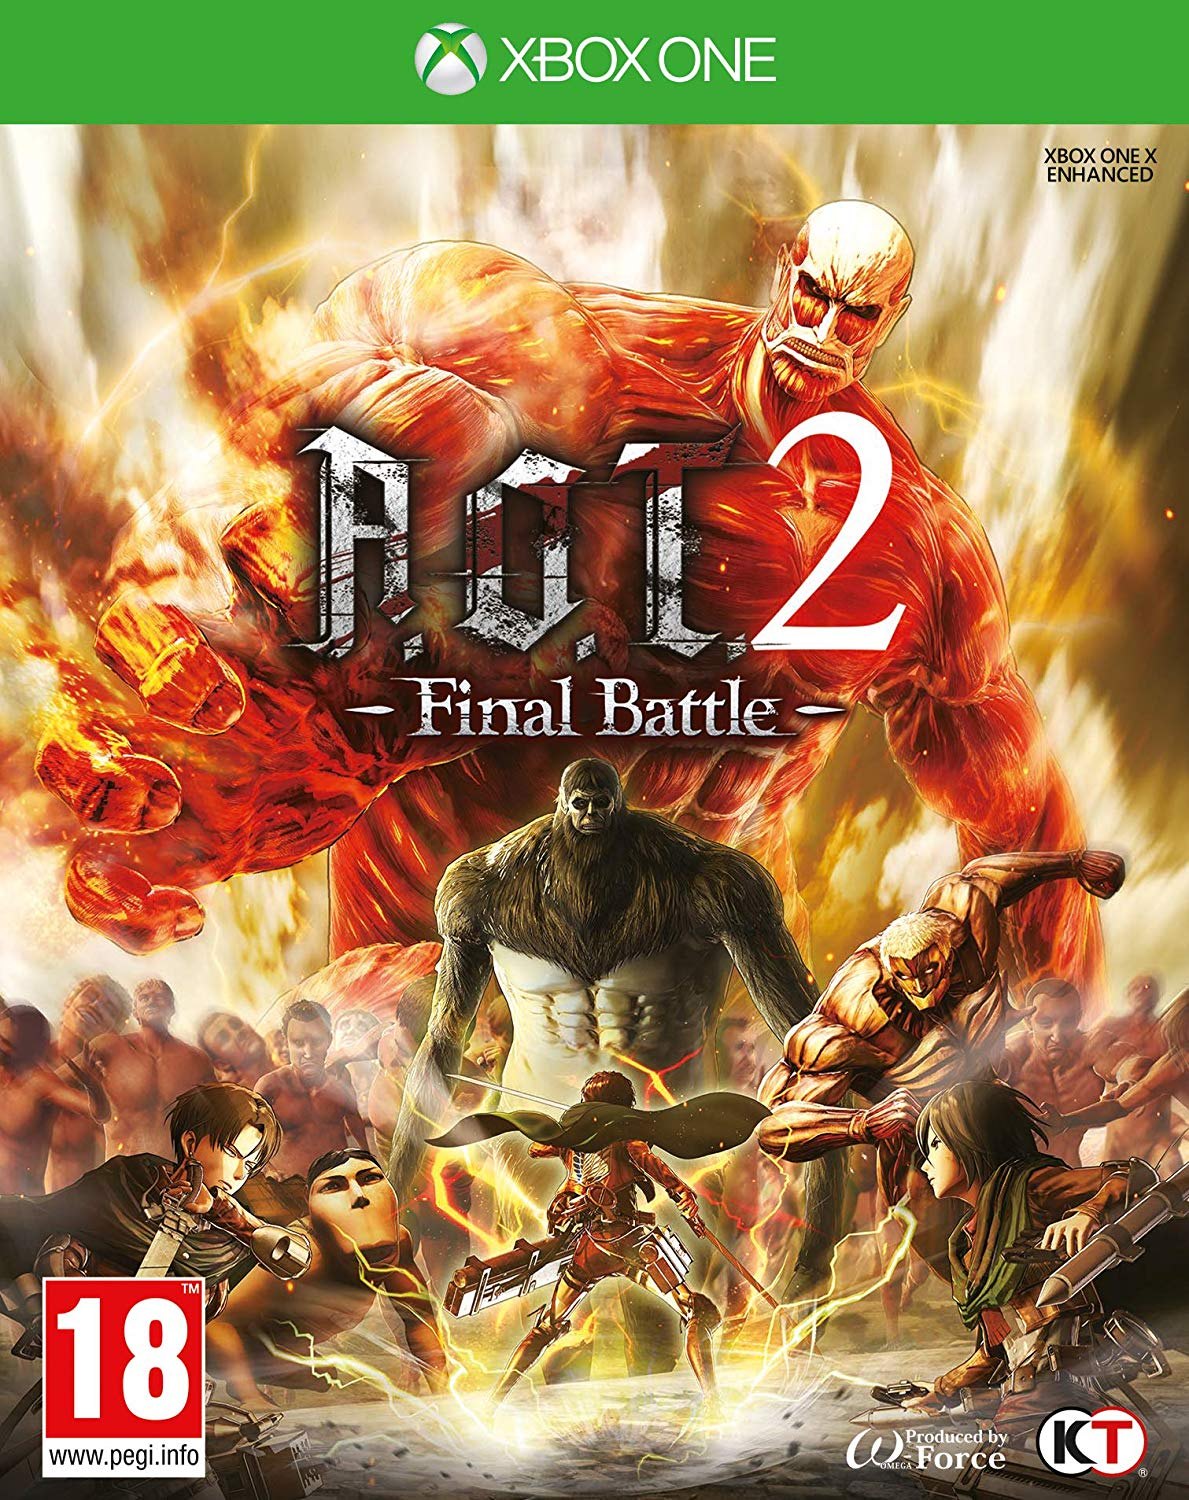 Attack on Titan 2 (AOT 2) Final Battle